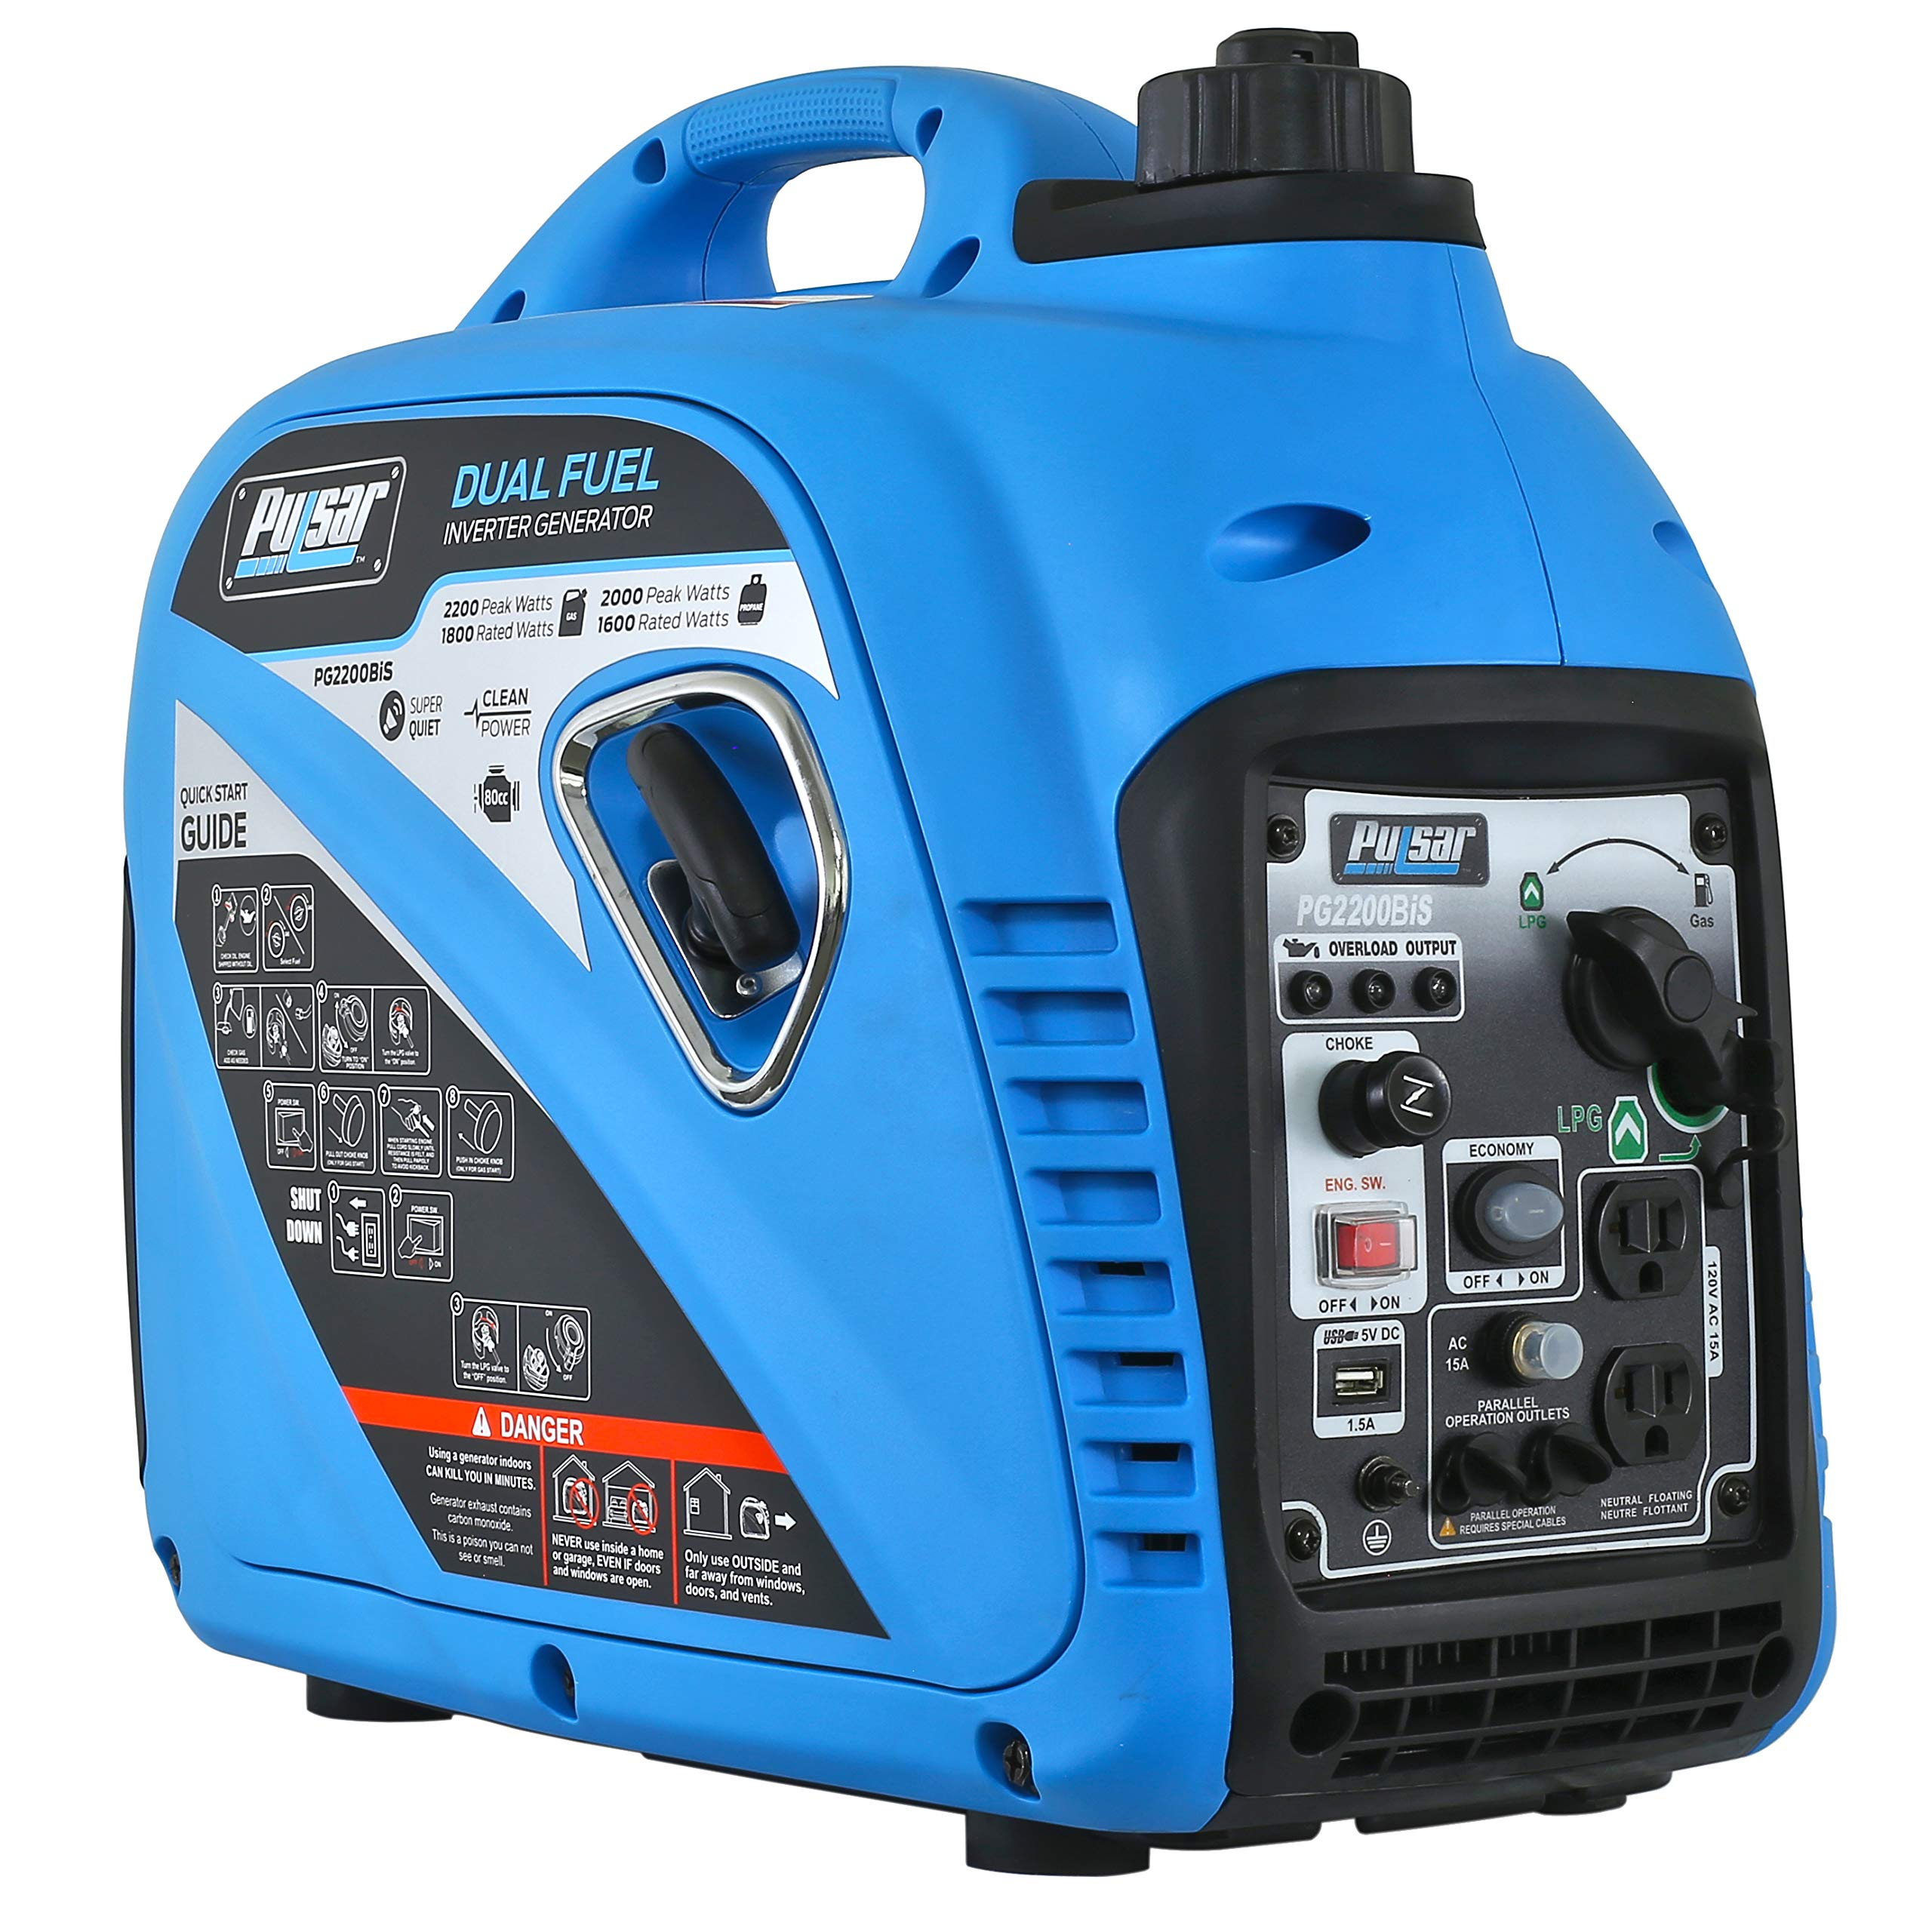 Pulsar 2,200W Portable Dual Fuel Quiet Inverter Generator With USB Outlet & Parallel Capability,